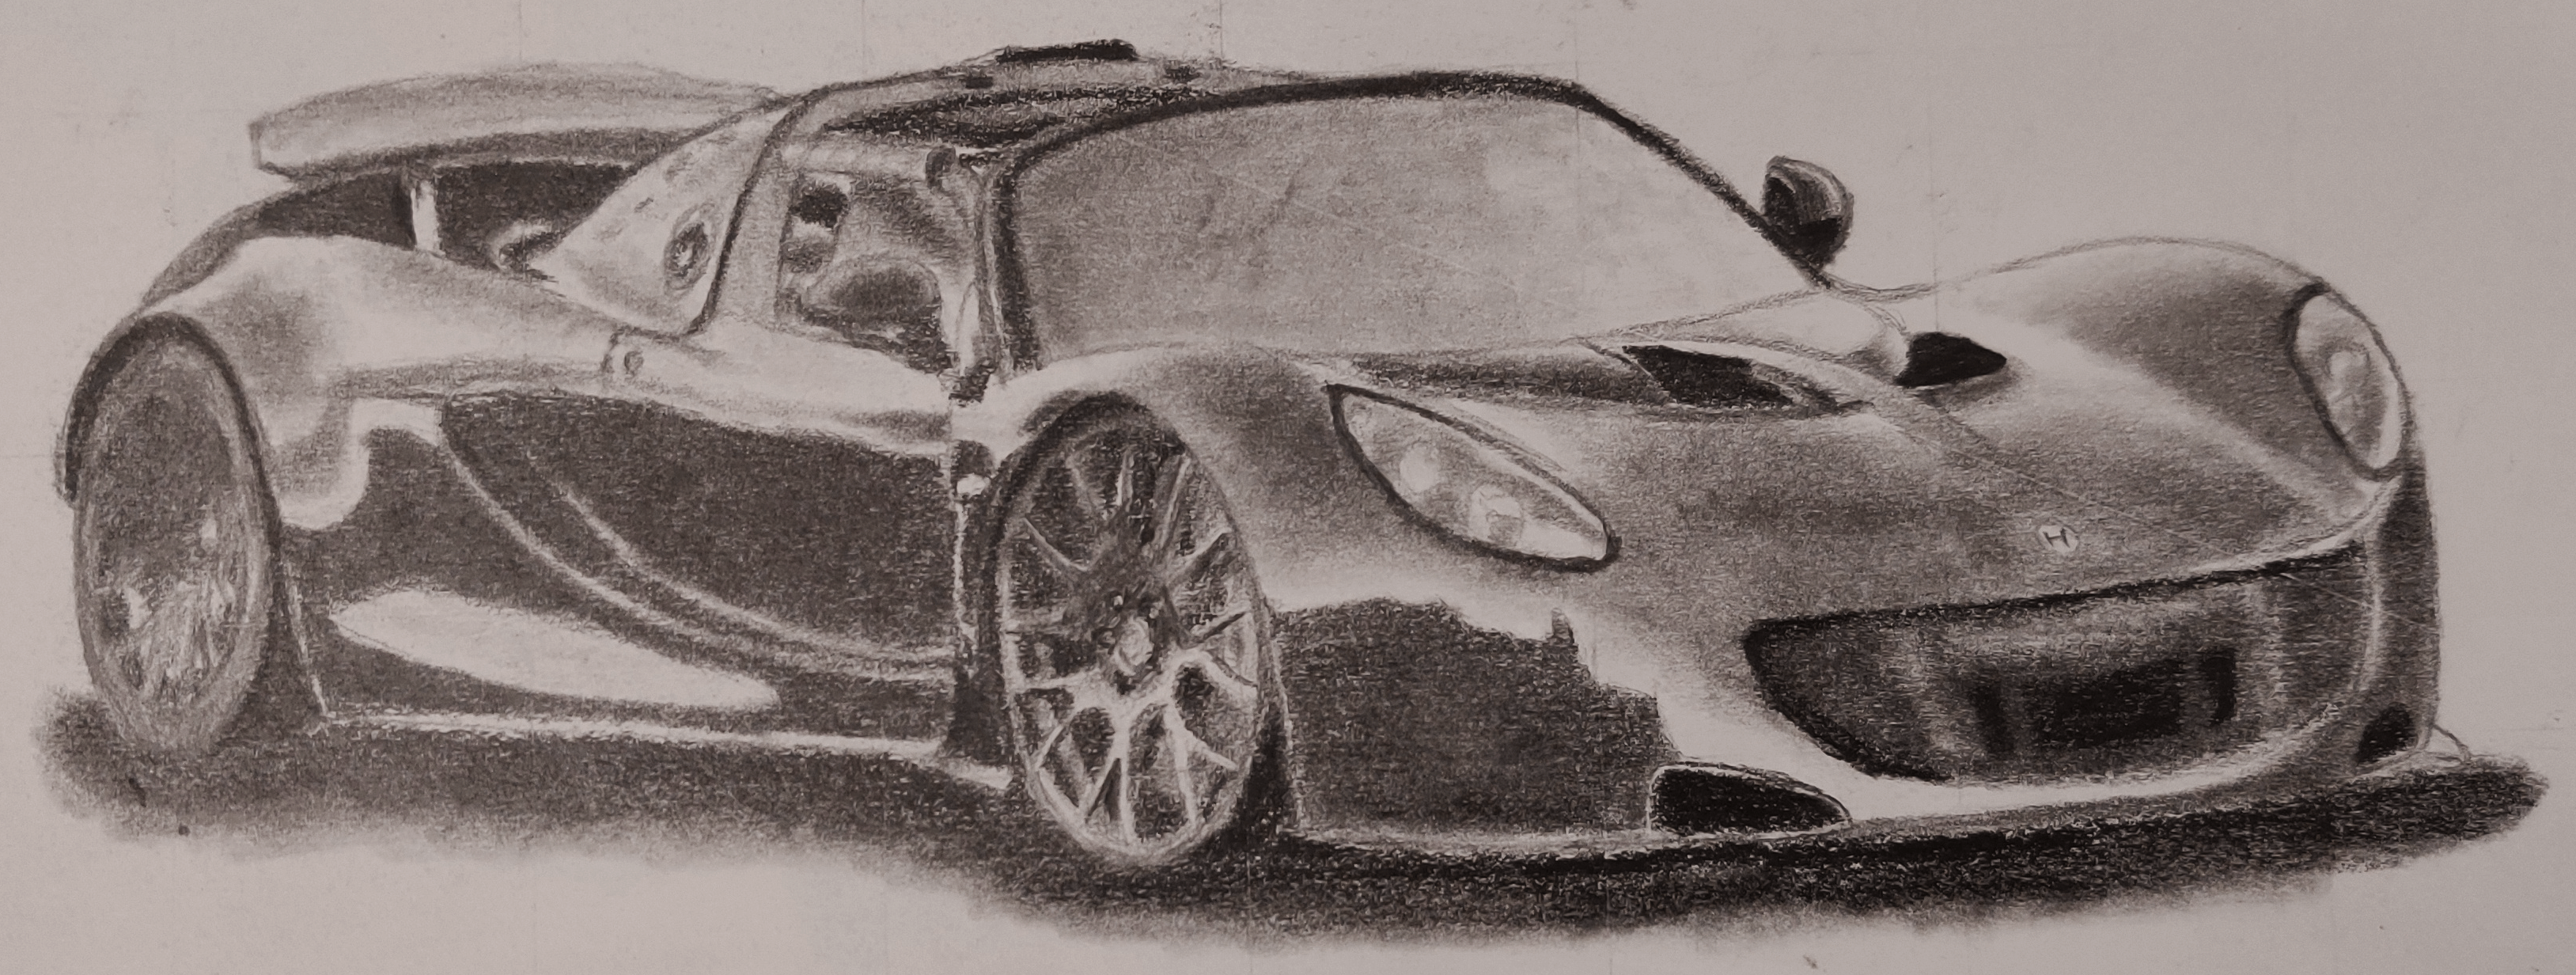 A drawing of a Hennessey Venom GT in pencil.